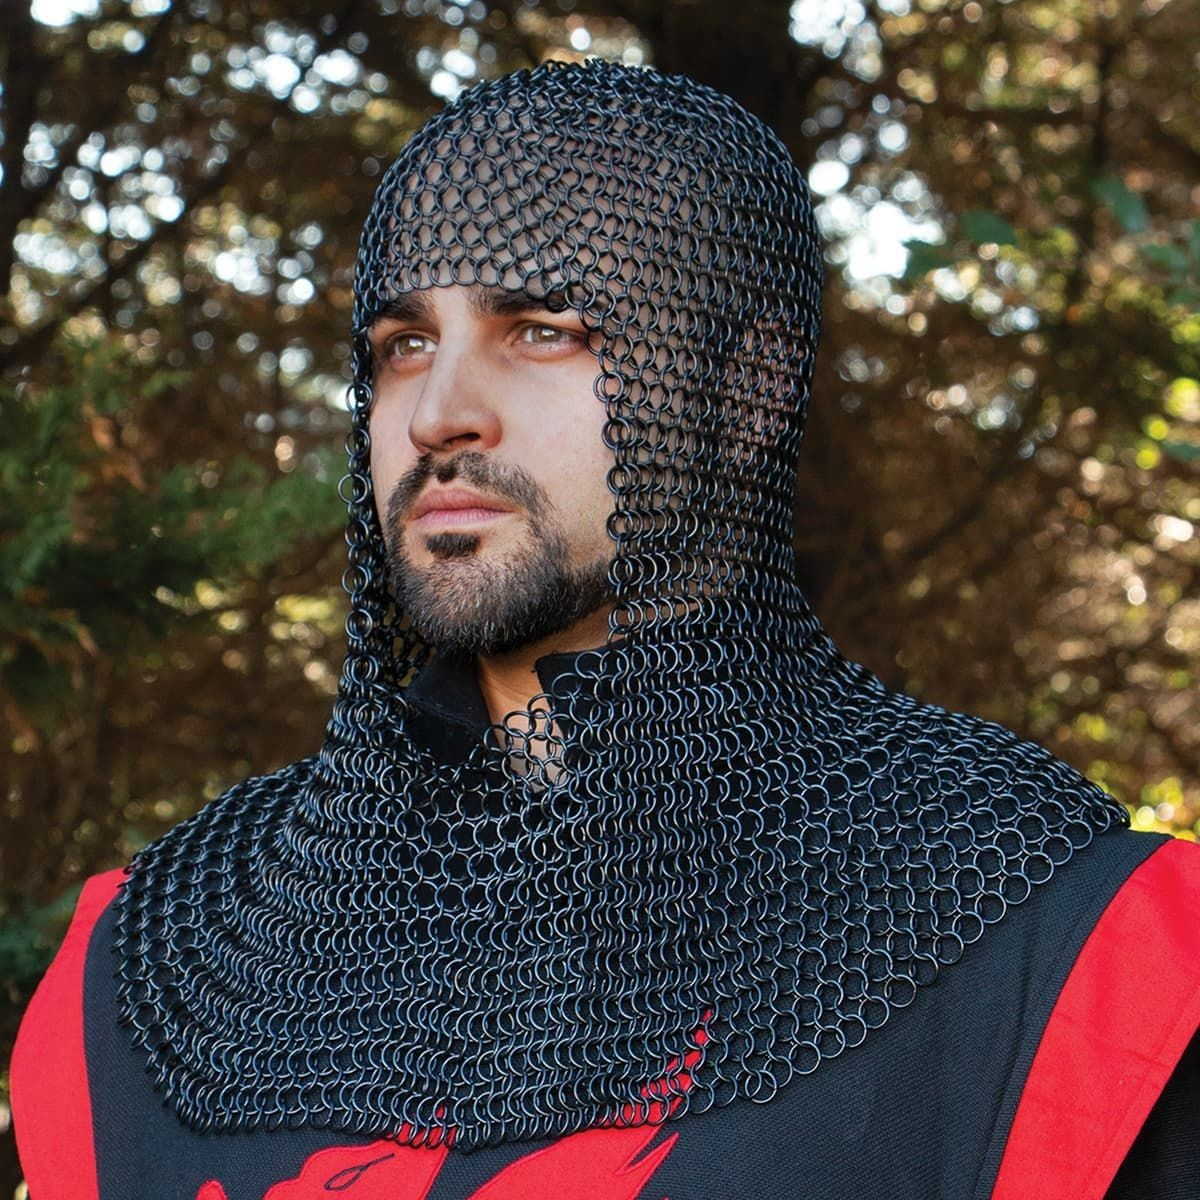 16 Gauge Butted Steel Blackened Mail Armor Coif